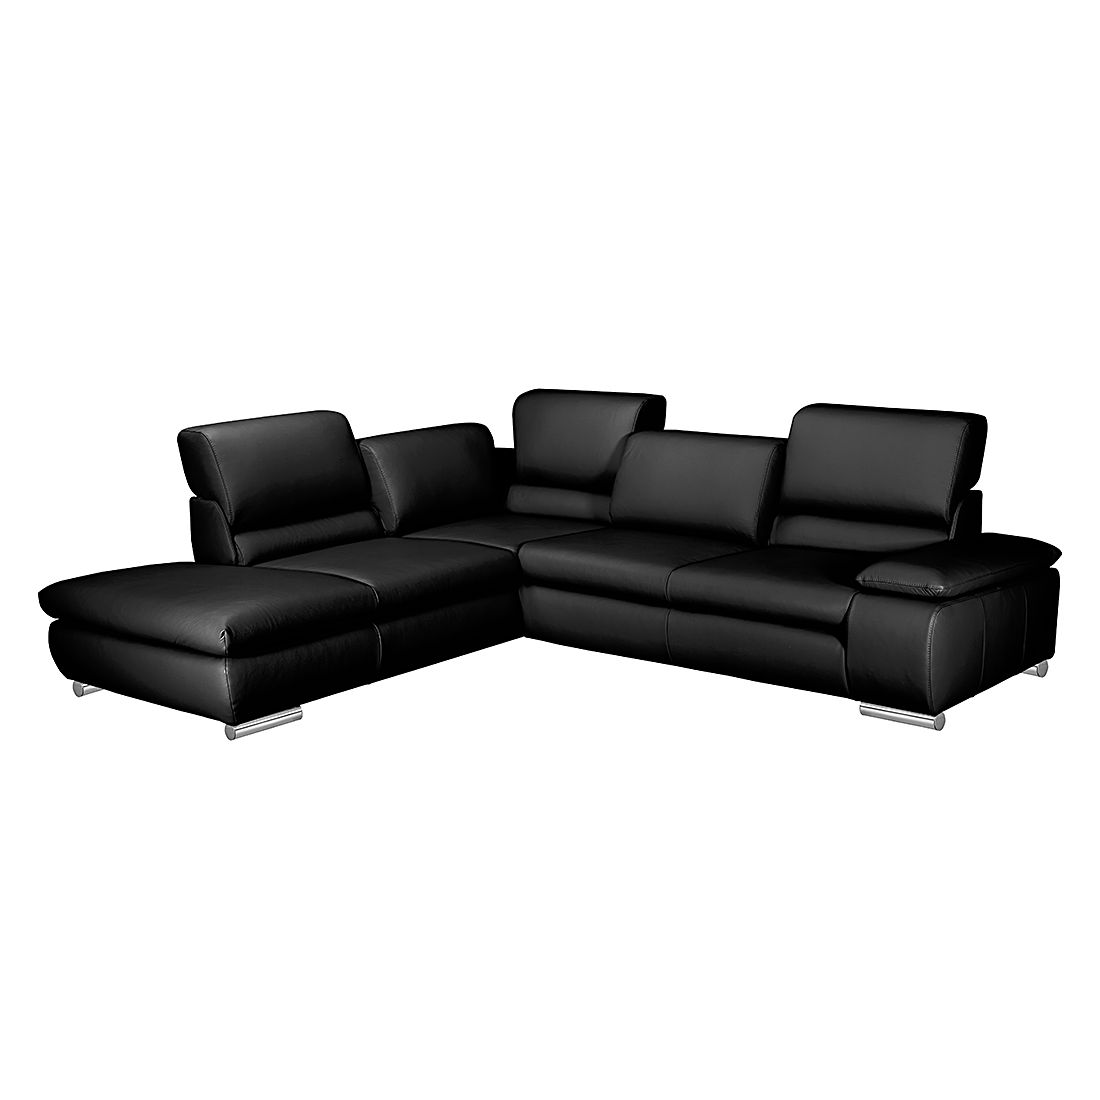 leder ecksofa mit schlaffunktion preisvergleich die. Black Bedroom Furniture Sets. Home Design Ideas